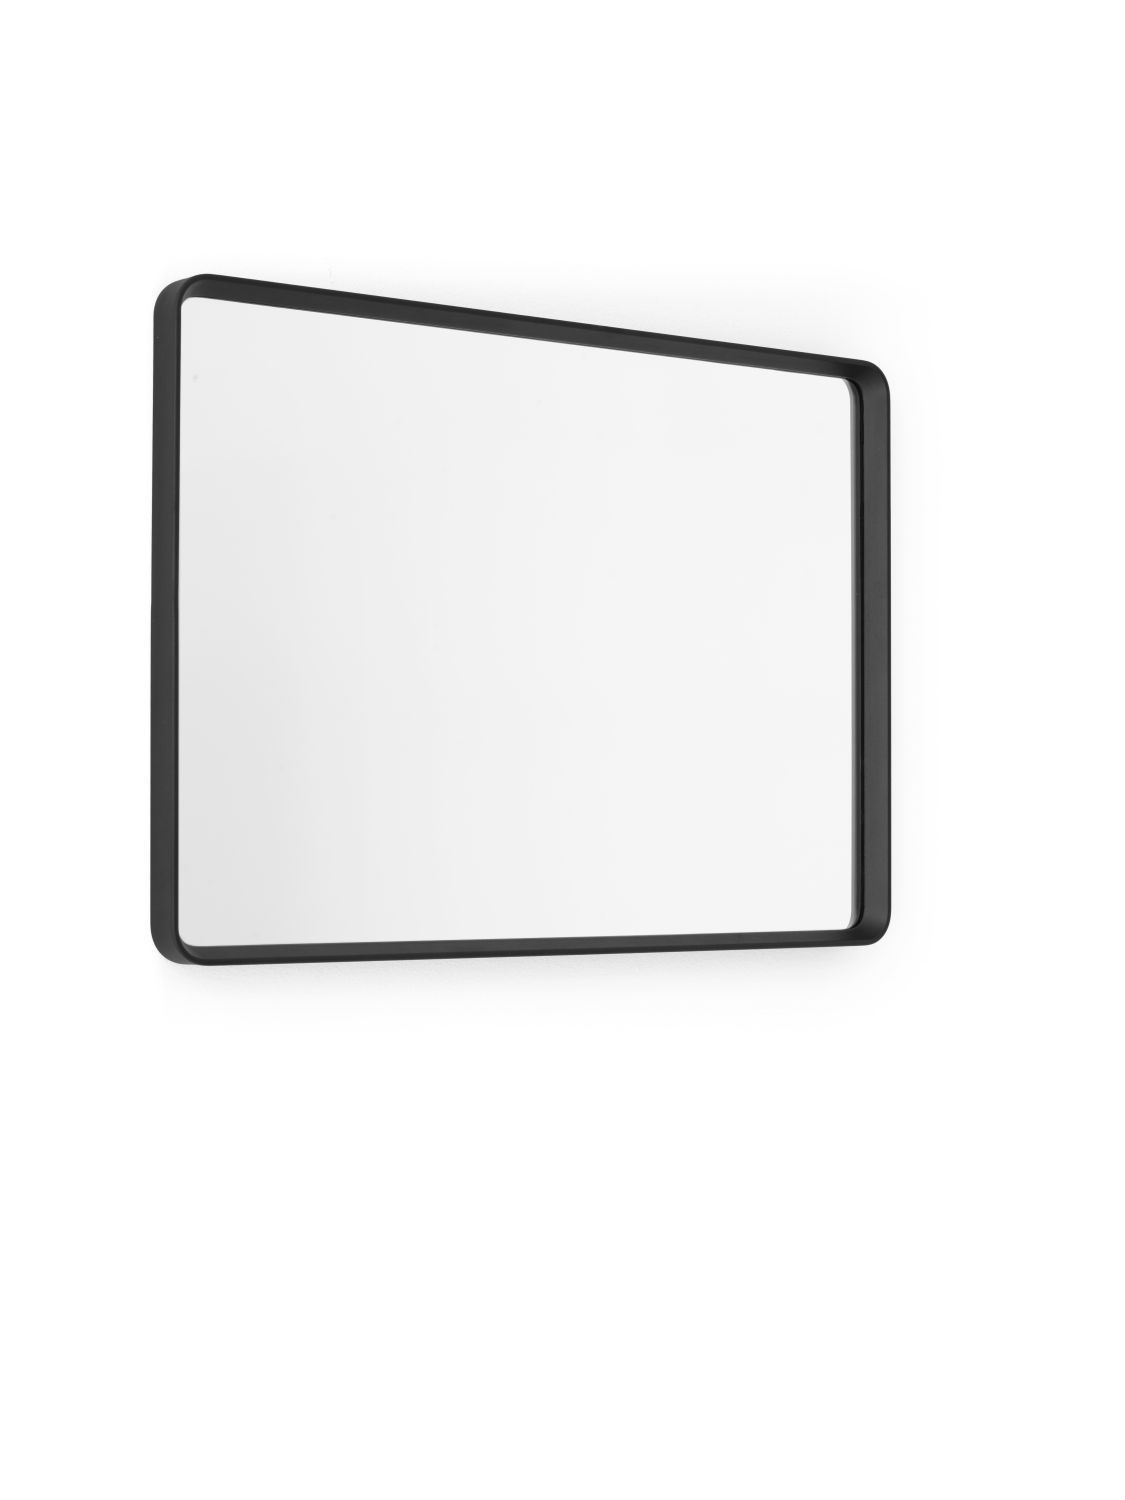 Badezimmer Norm Menu Norm Mirror Rectangular Black In 2019 Products